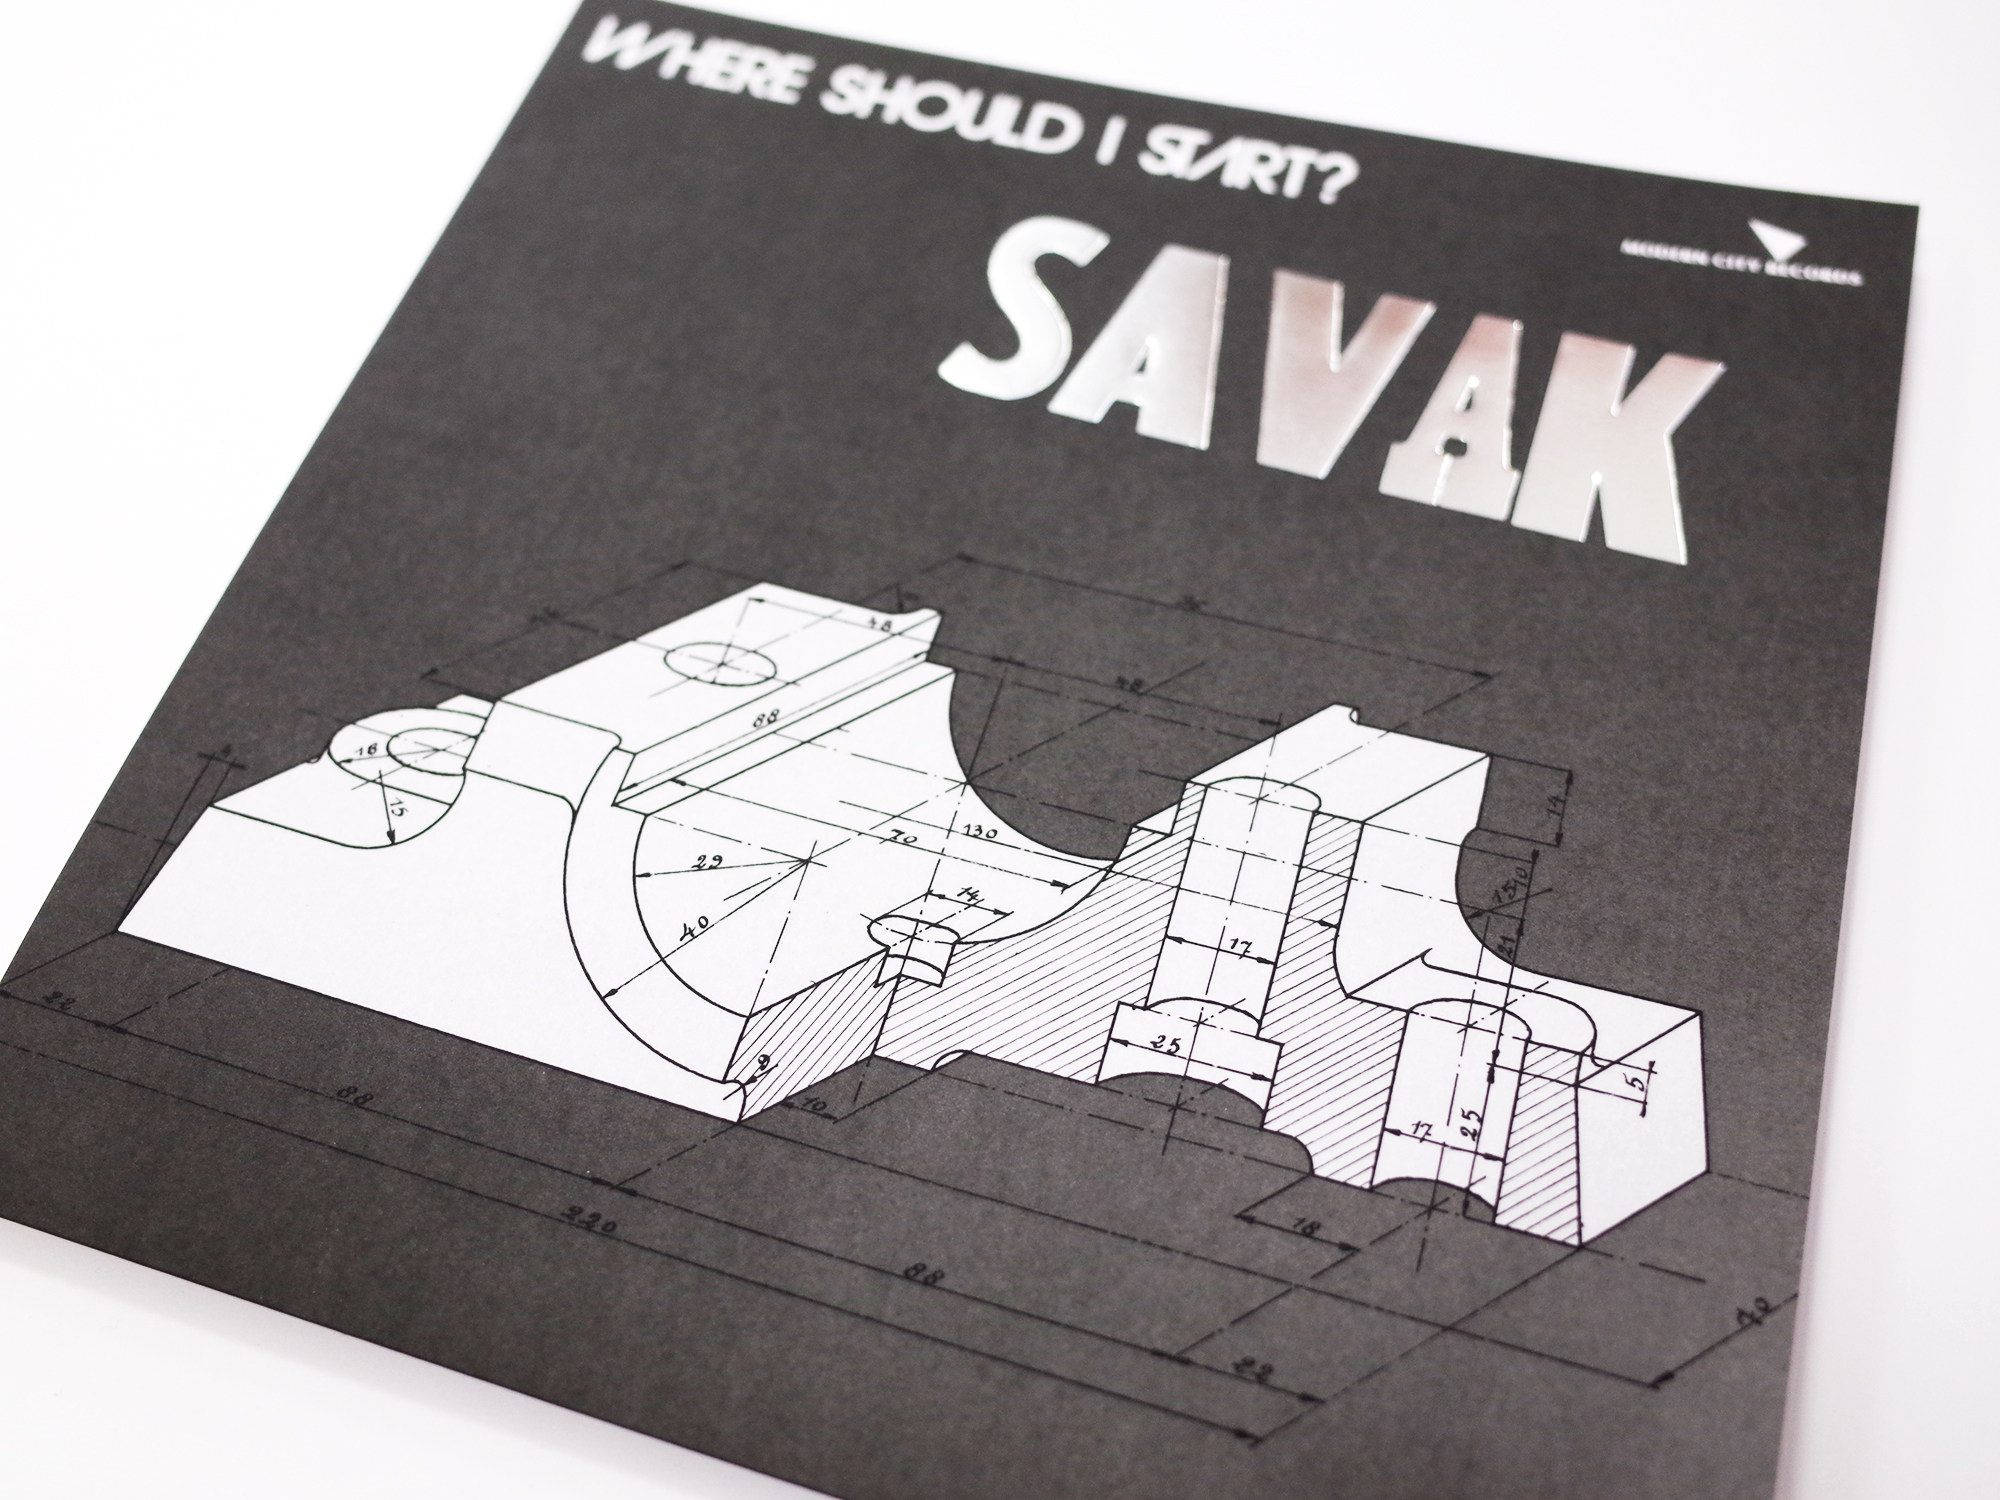 SAVAK - 45 tours - Where Should I Start